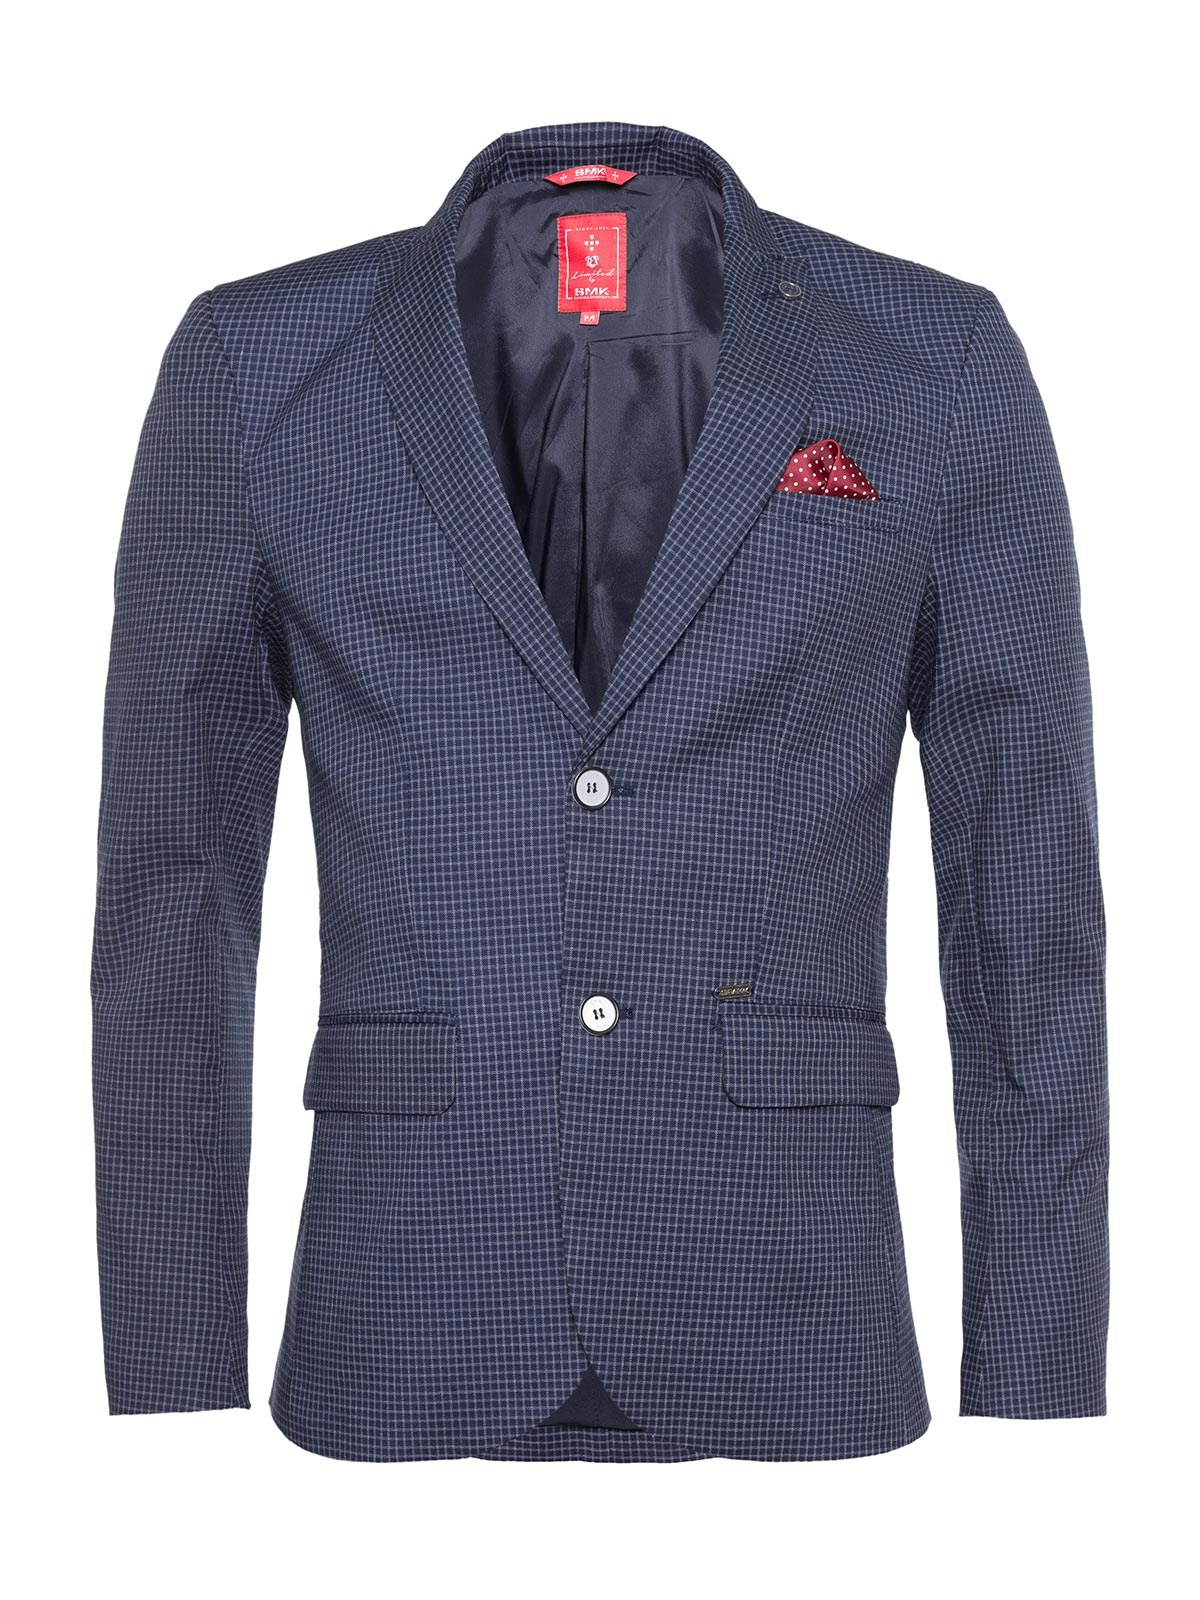 BLAZER SMK LITTLE CHESS